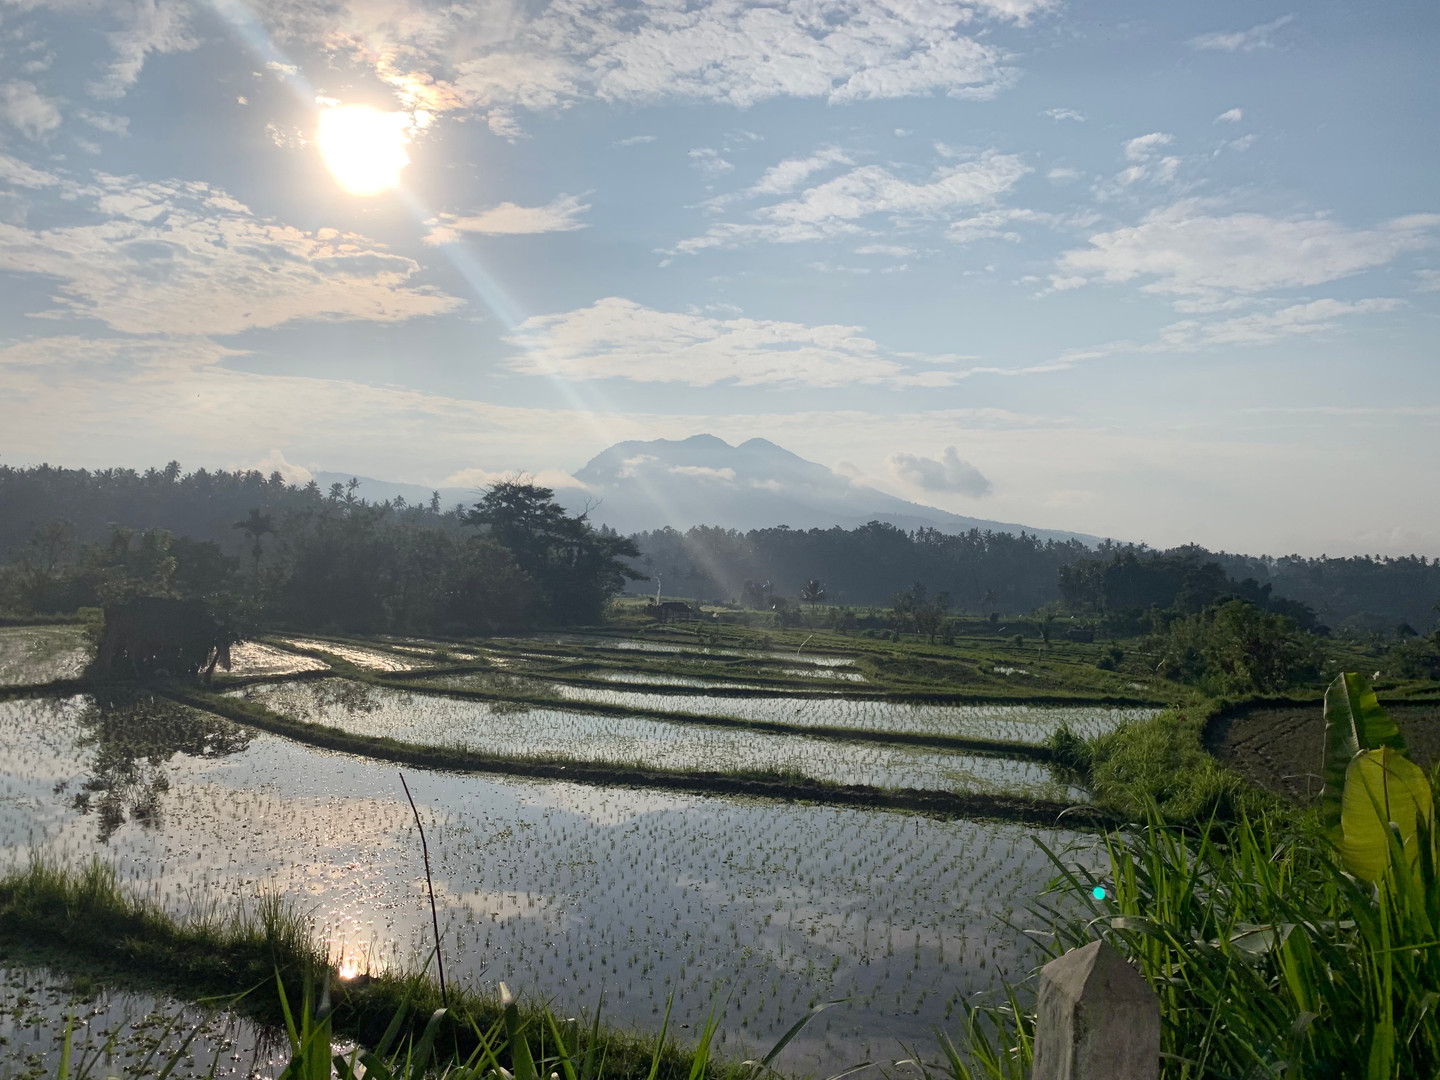 Sweeping Plains of rice fields